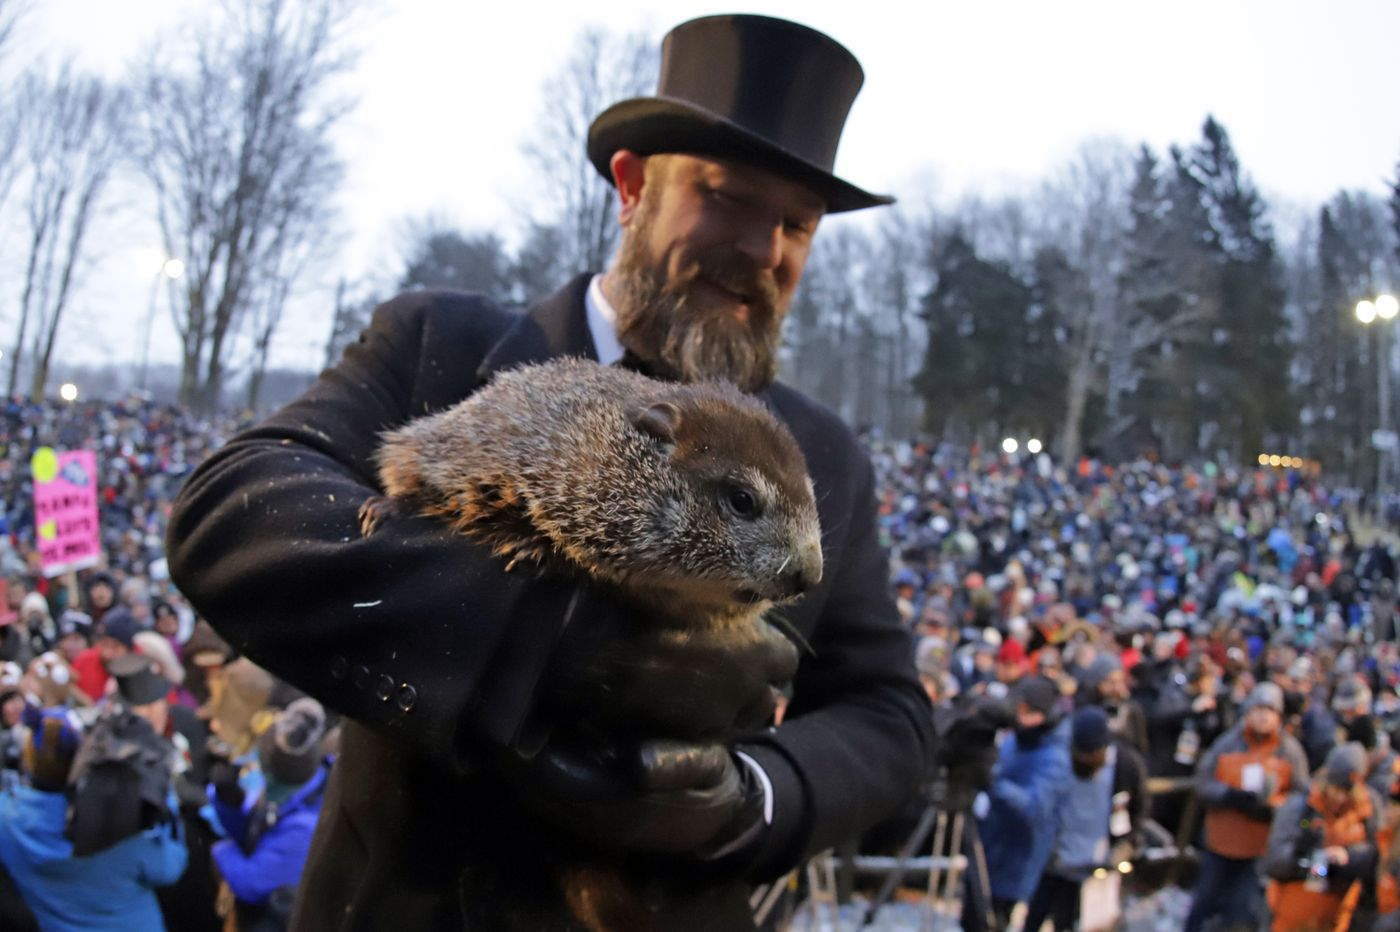 On Groundhog Day Will Punxsutawney Phil See His Shadow